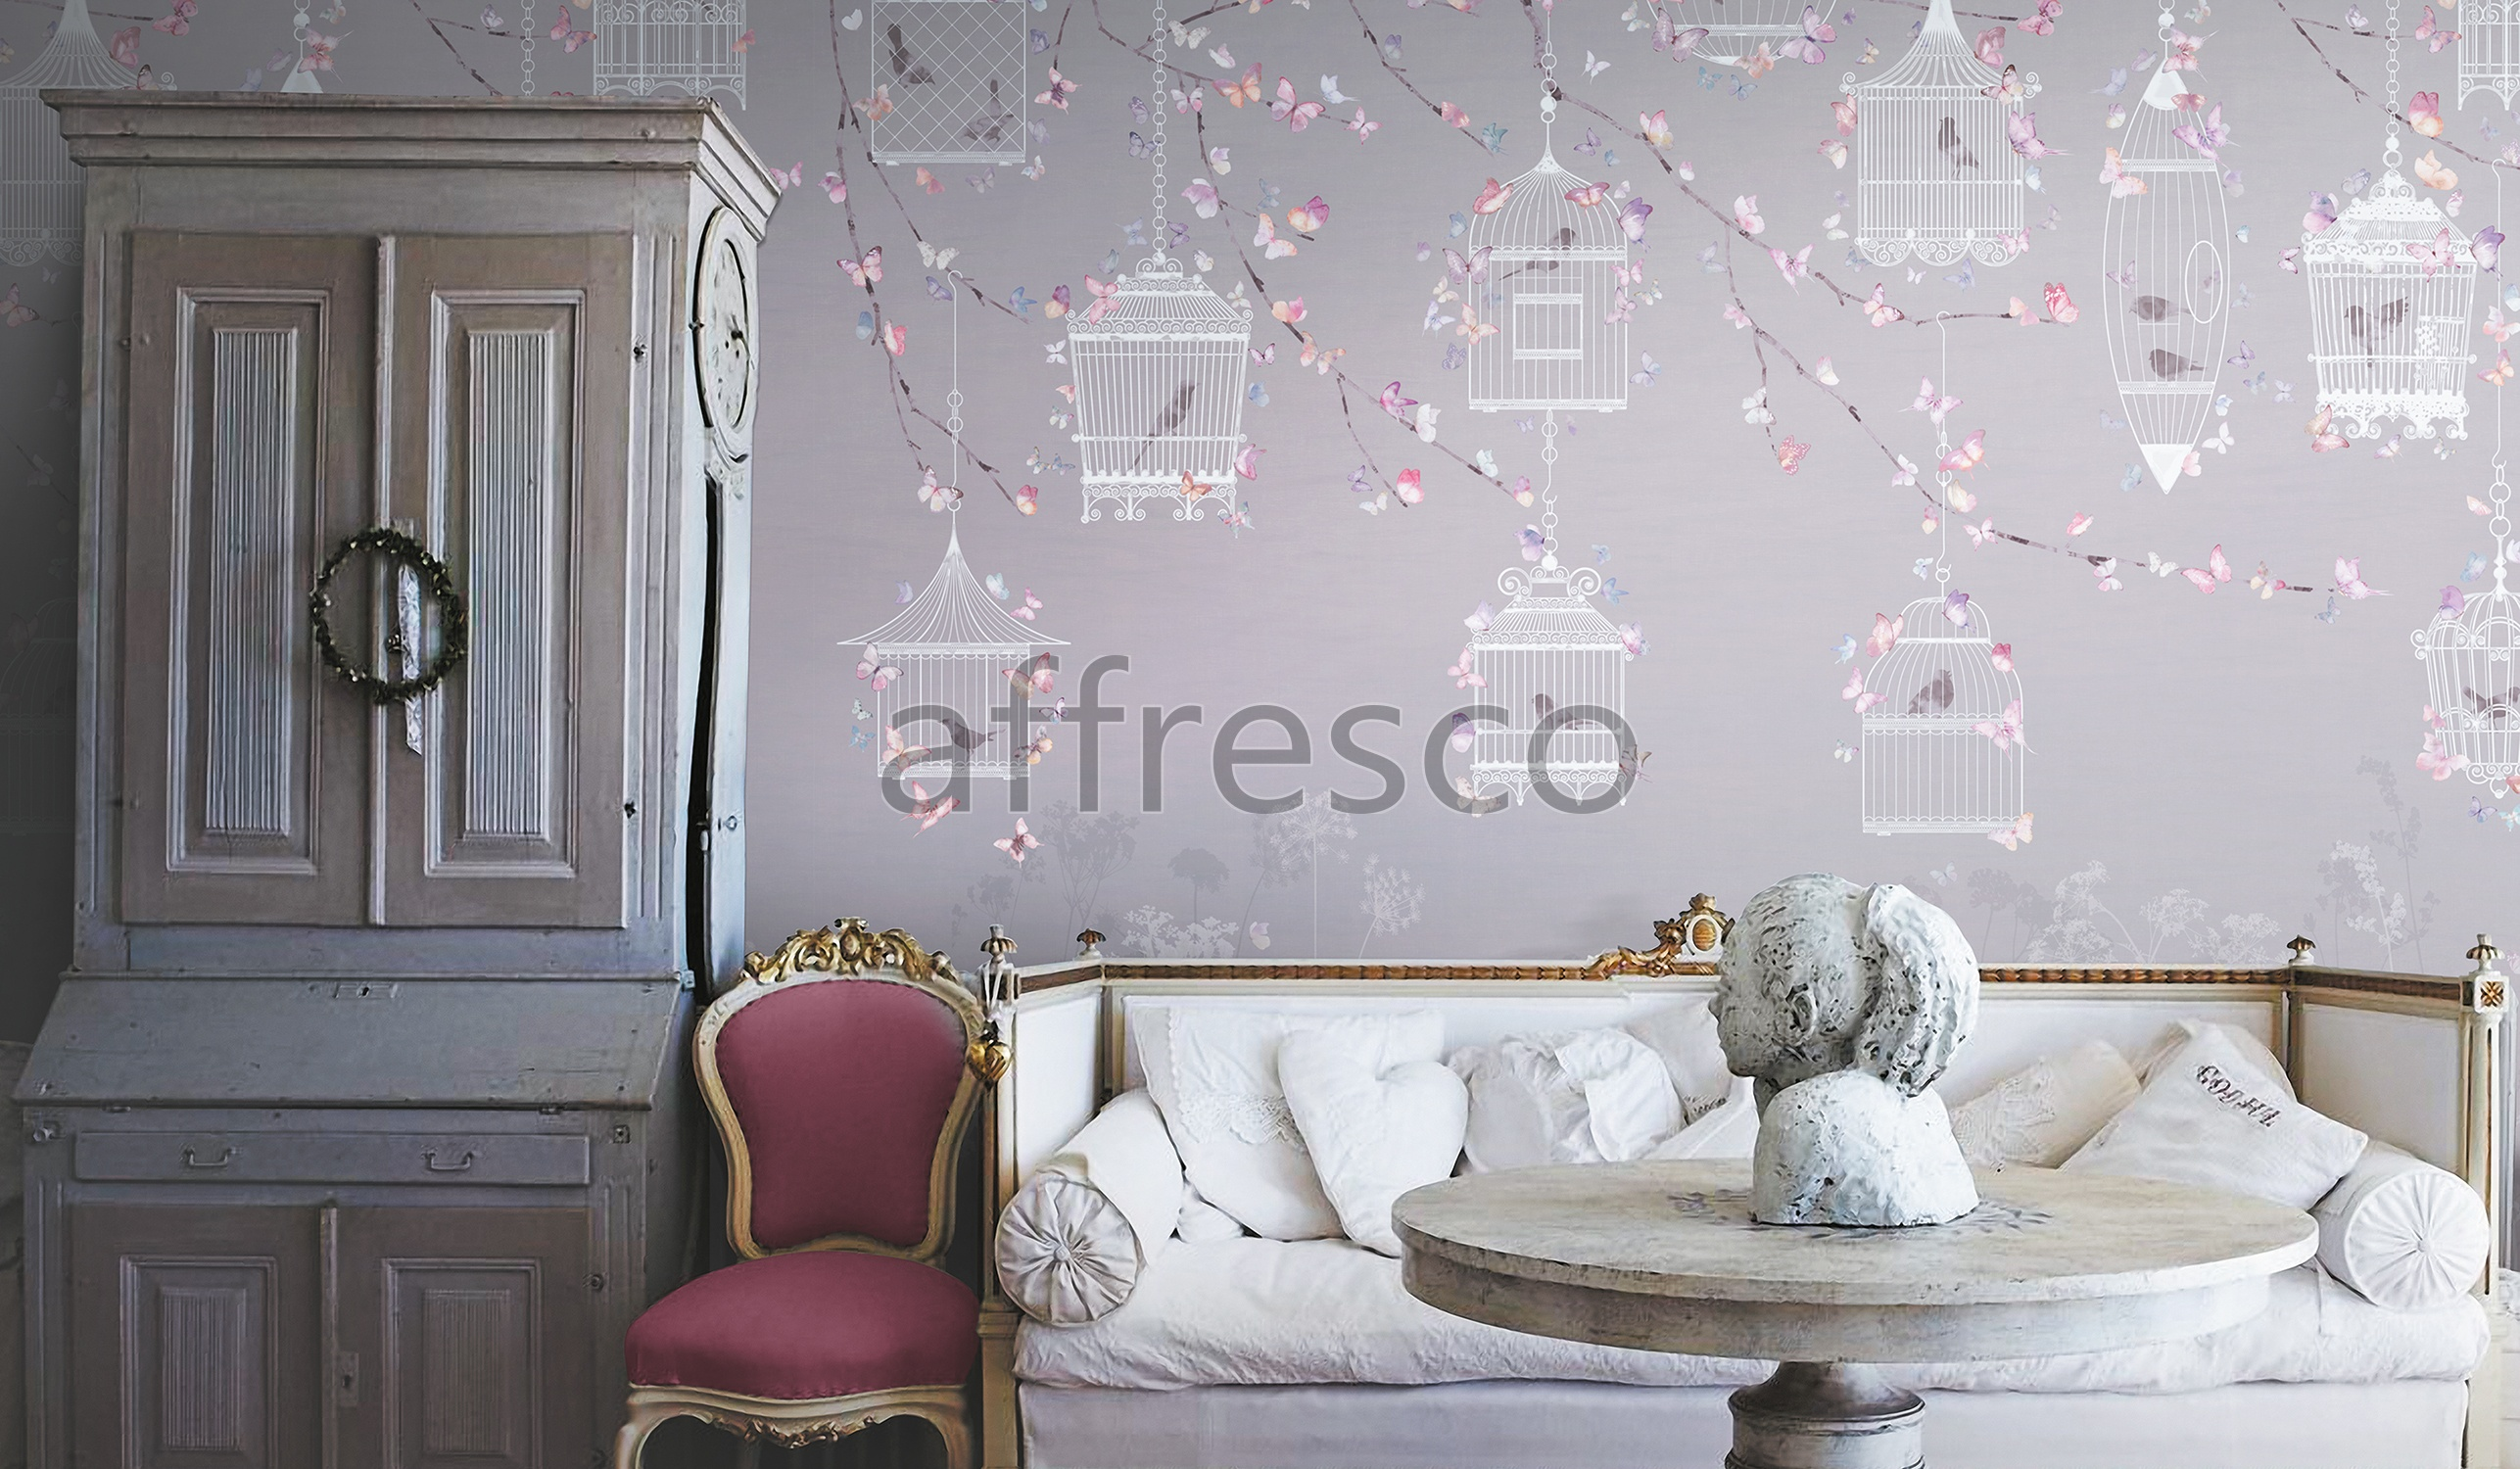 Handmade wallpaper, Handmade wallpaper | Butterflies